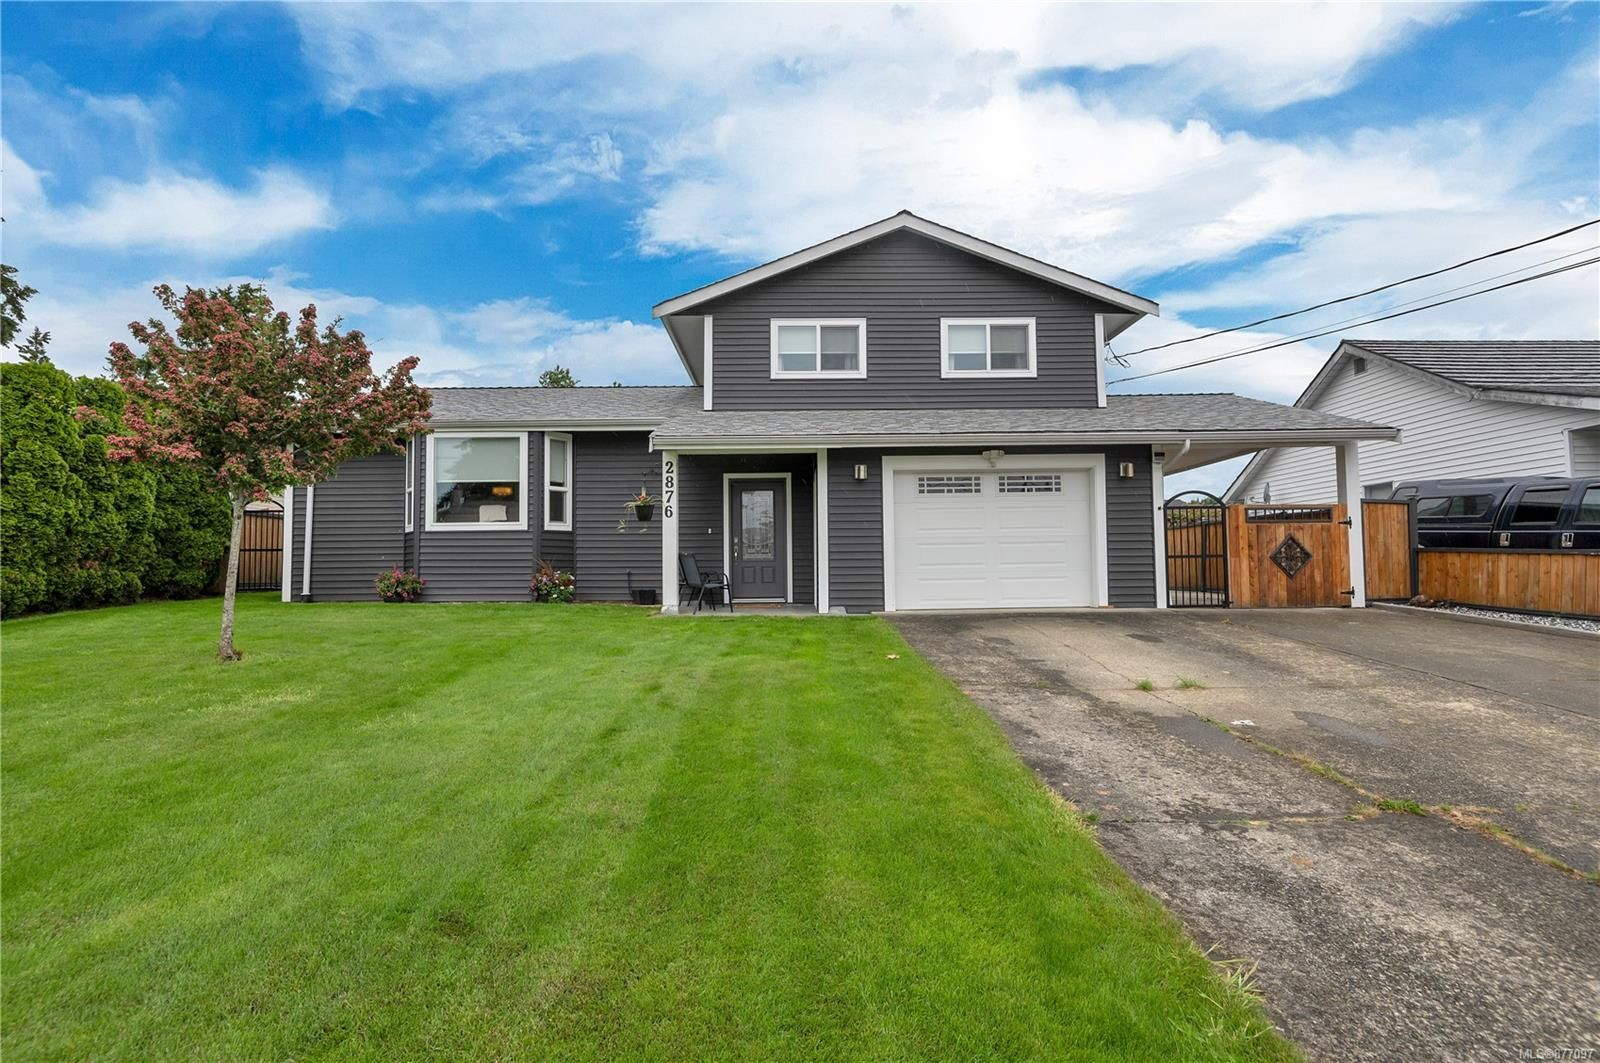 Main Photo: 2876 Fairmile Rd in : CR Willow Point House for sale (Campbell River)  : MLS®# 877097